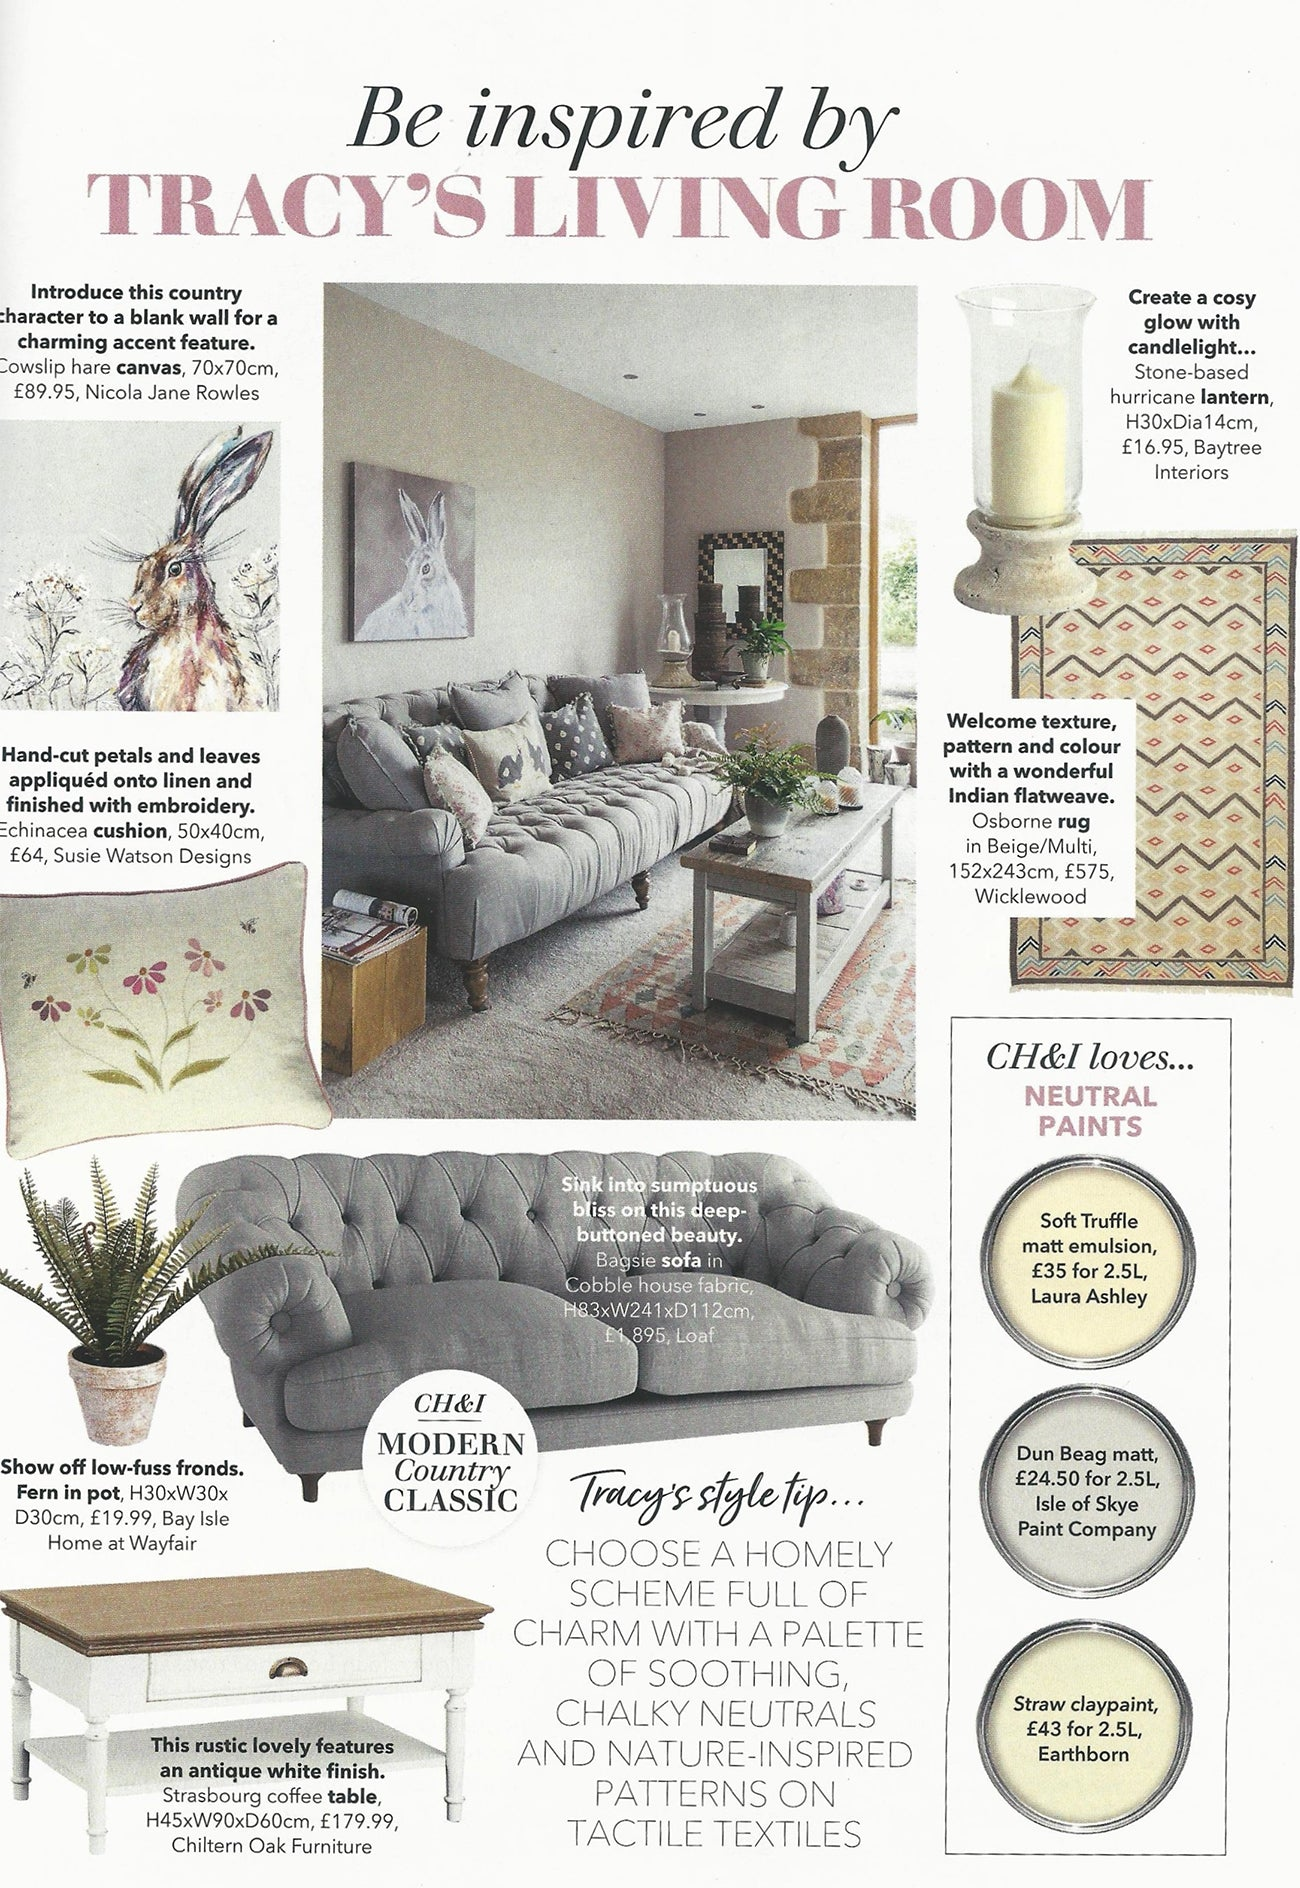 Wicklewood Osborne rug featured in Country Homes & Interiors